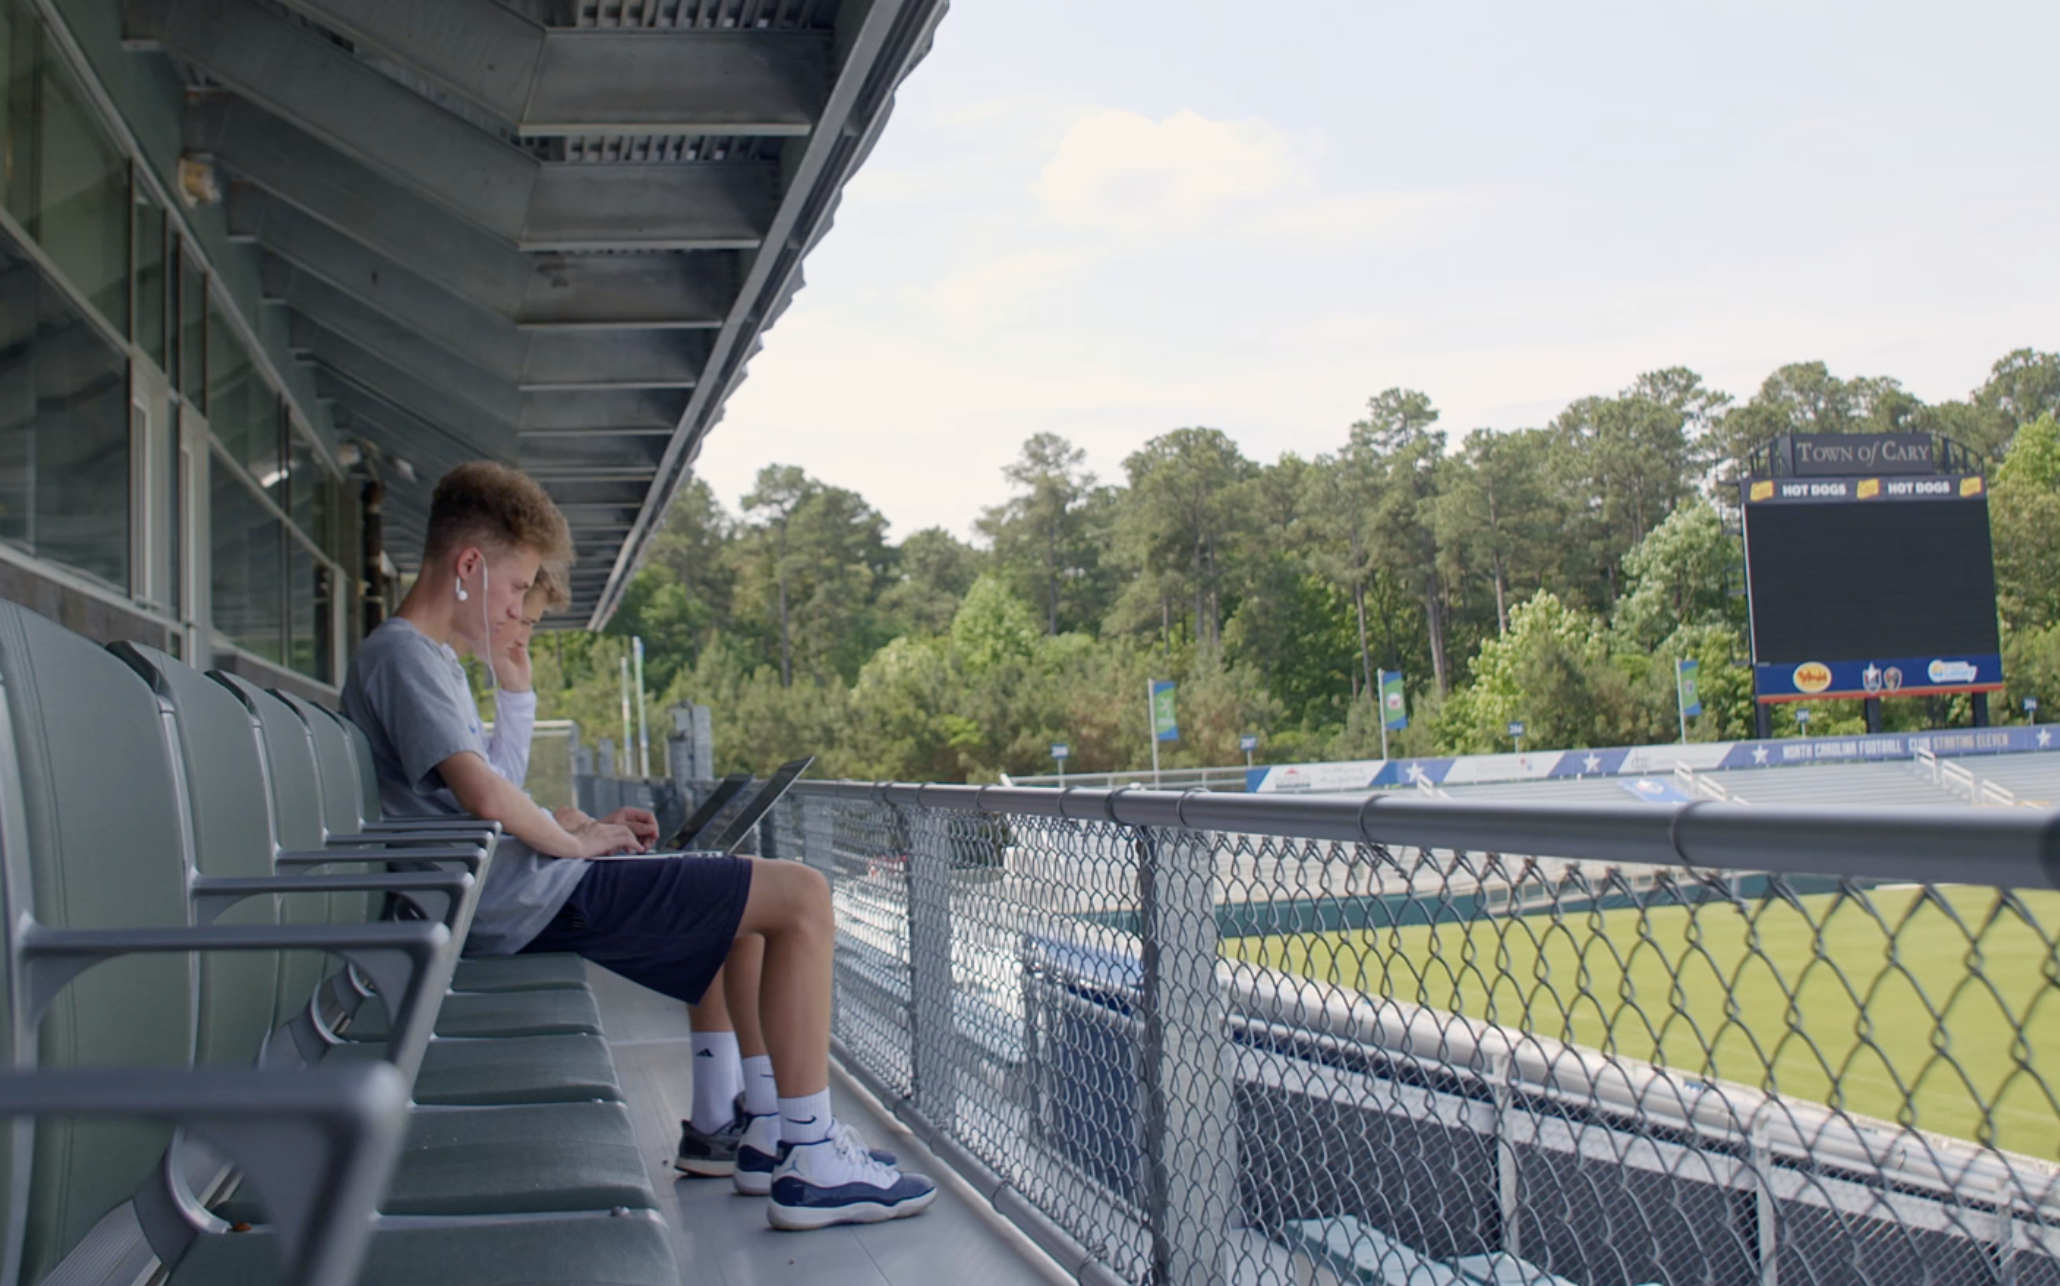 Learning outside at WakeMed Soccer Park, Cary, North Carolina